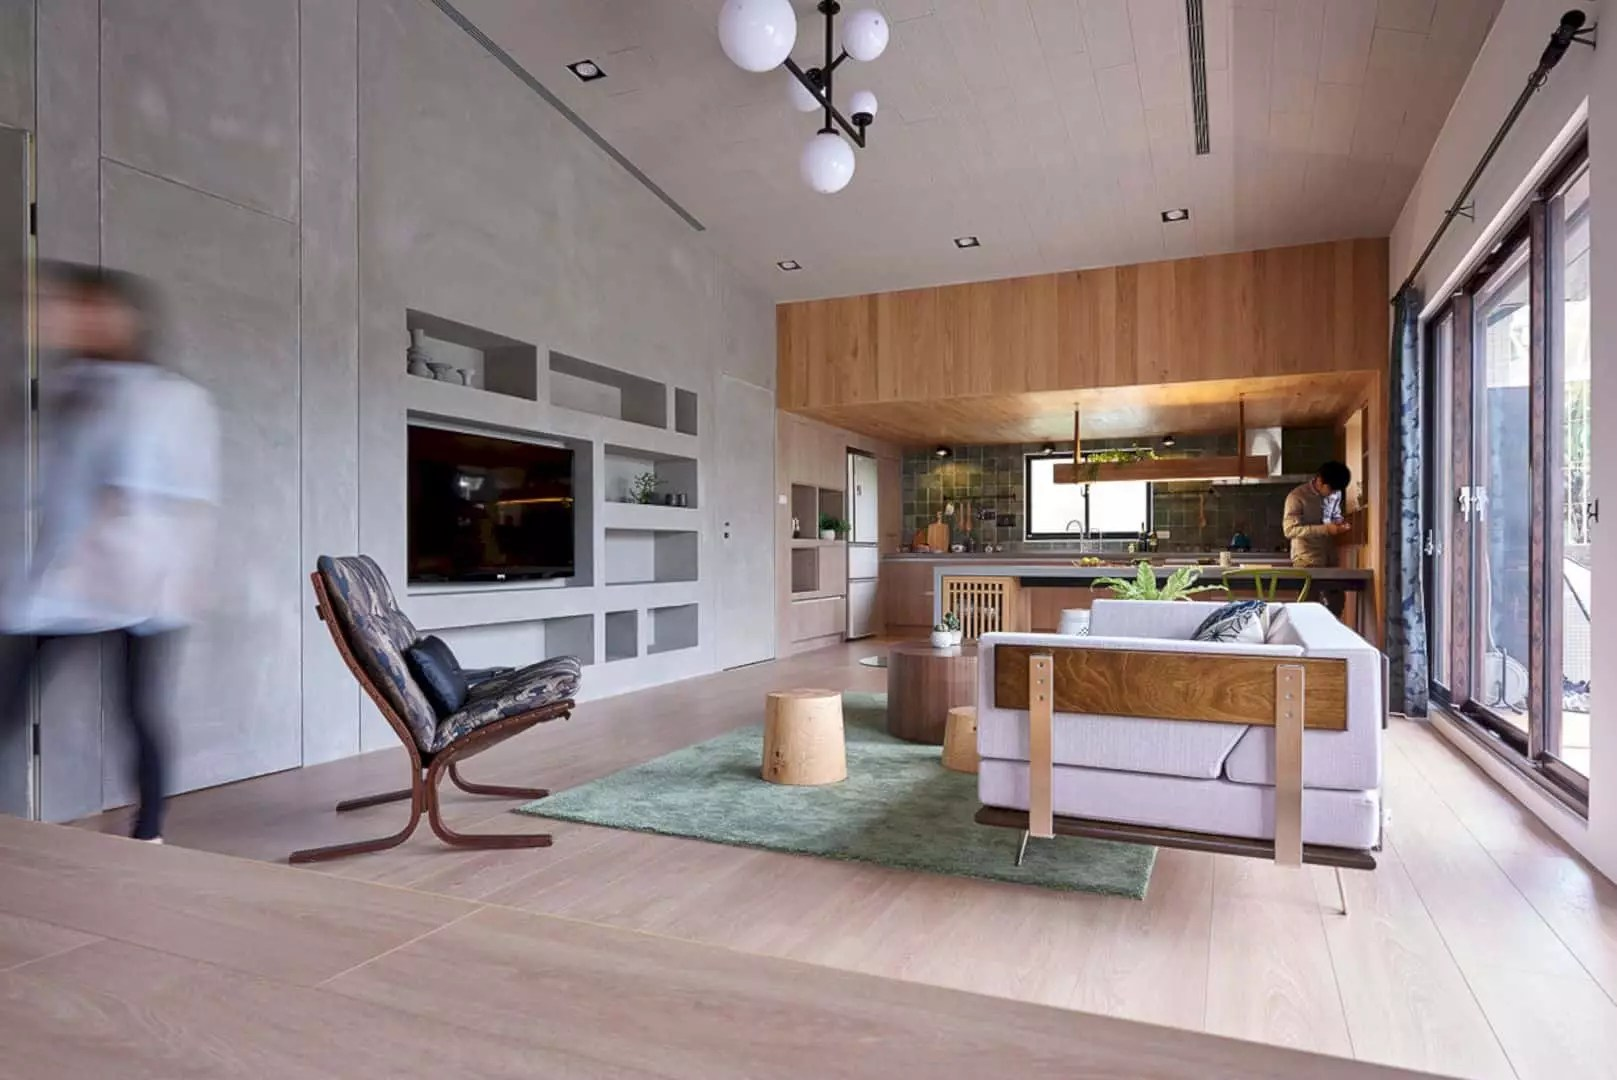 House is merging the dining room and old living room by removing the wall between them the kitchen island design suits well with the modern interior